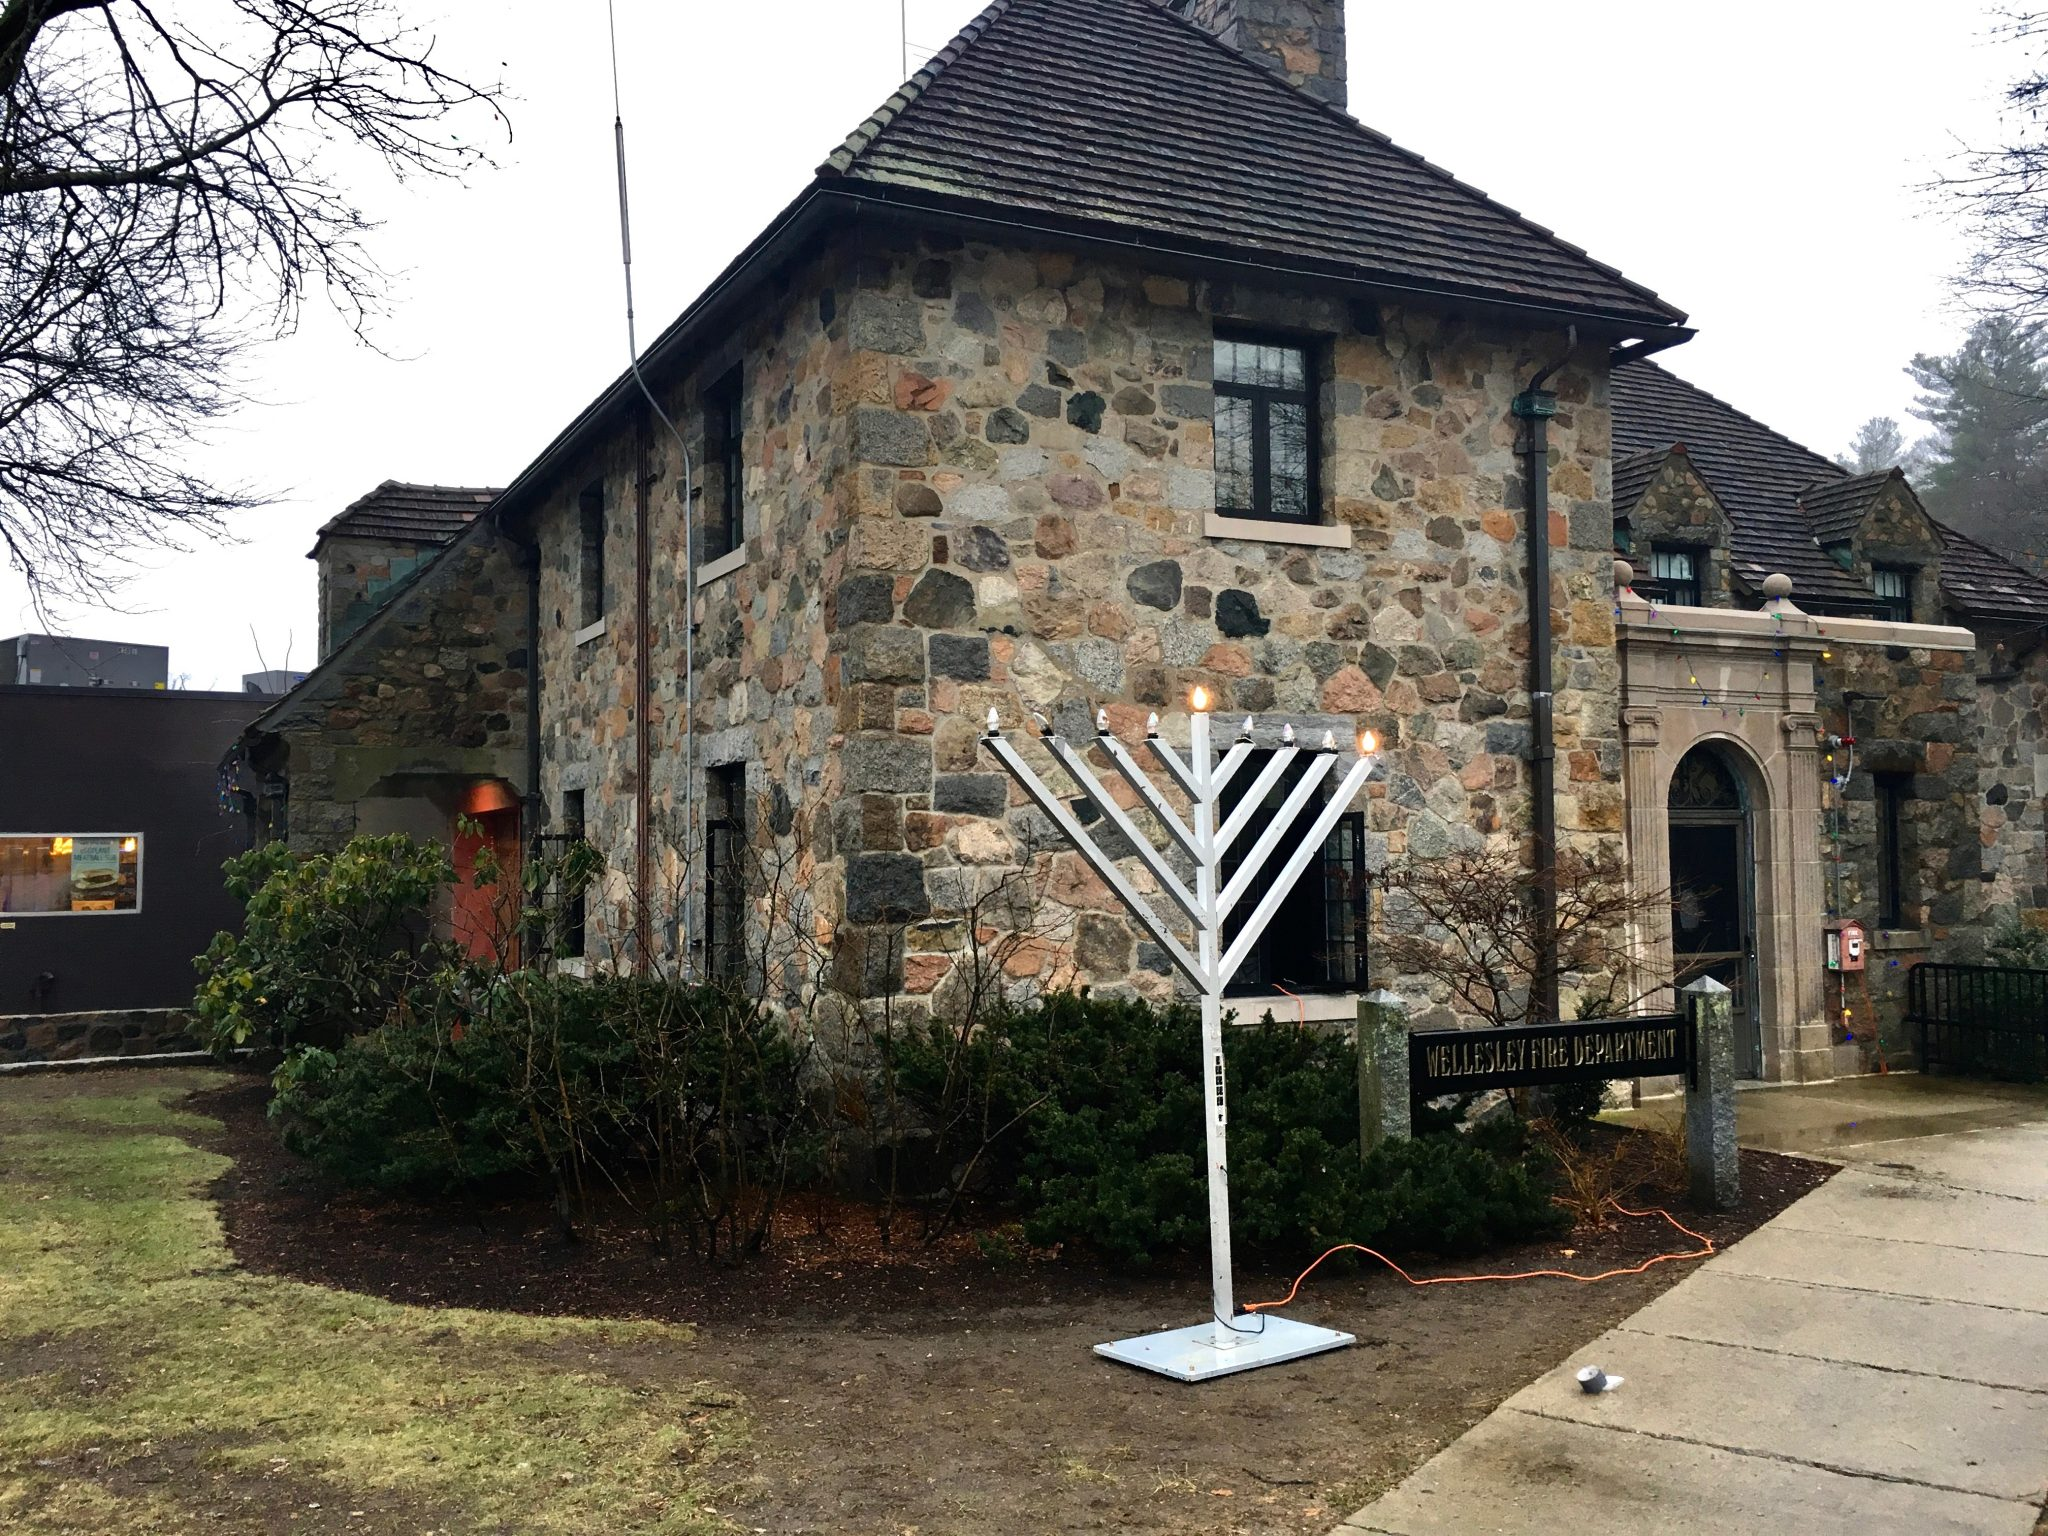 Wellesley menorah, Hanukkah